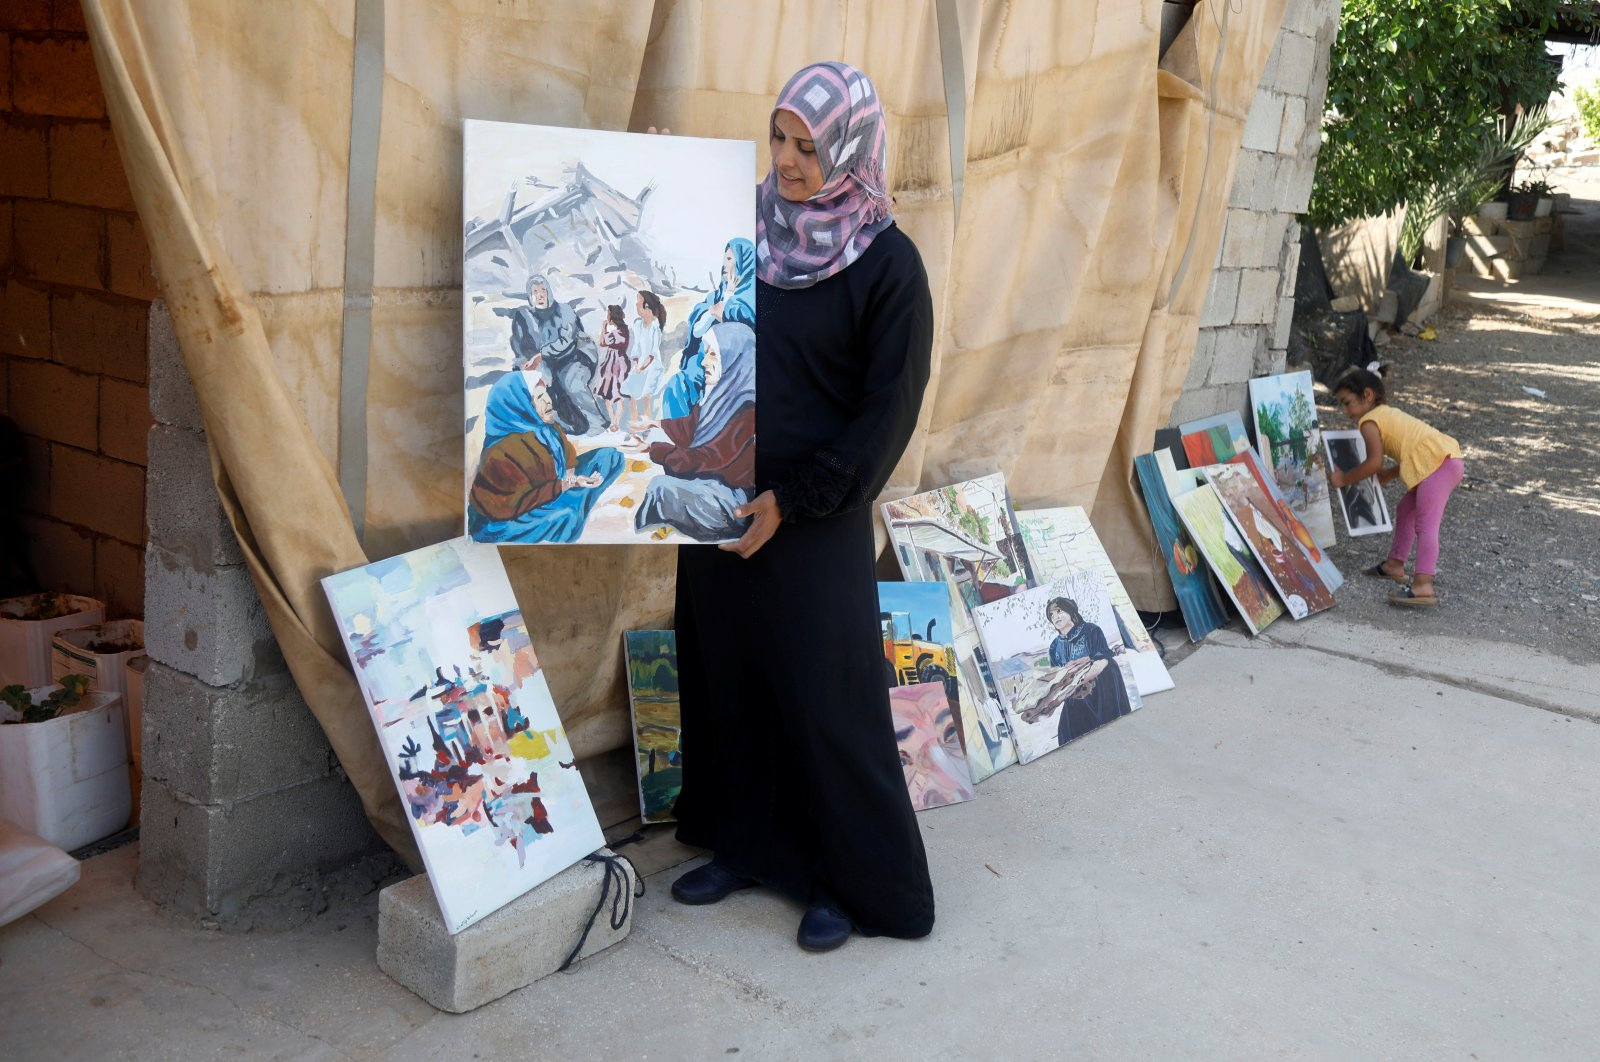 Khadeeja Bisharat, a Palestinian artist, displays a conflict-inspired artwork she painted, in Jordan Valley in the Israeli-occupied West Bank, June 18, 2020. (Reuters Photo)